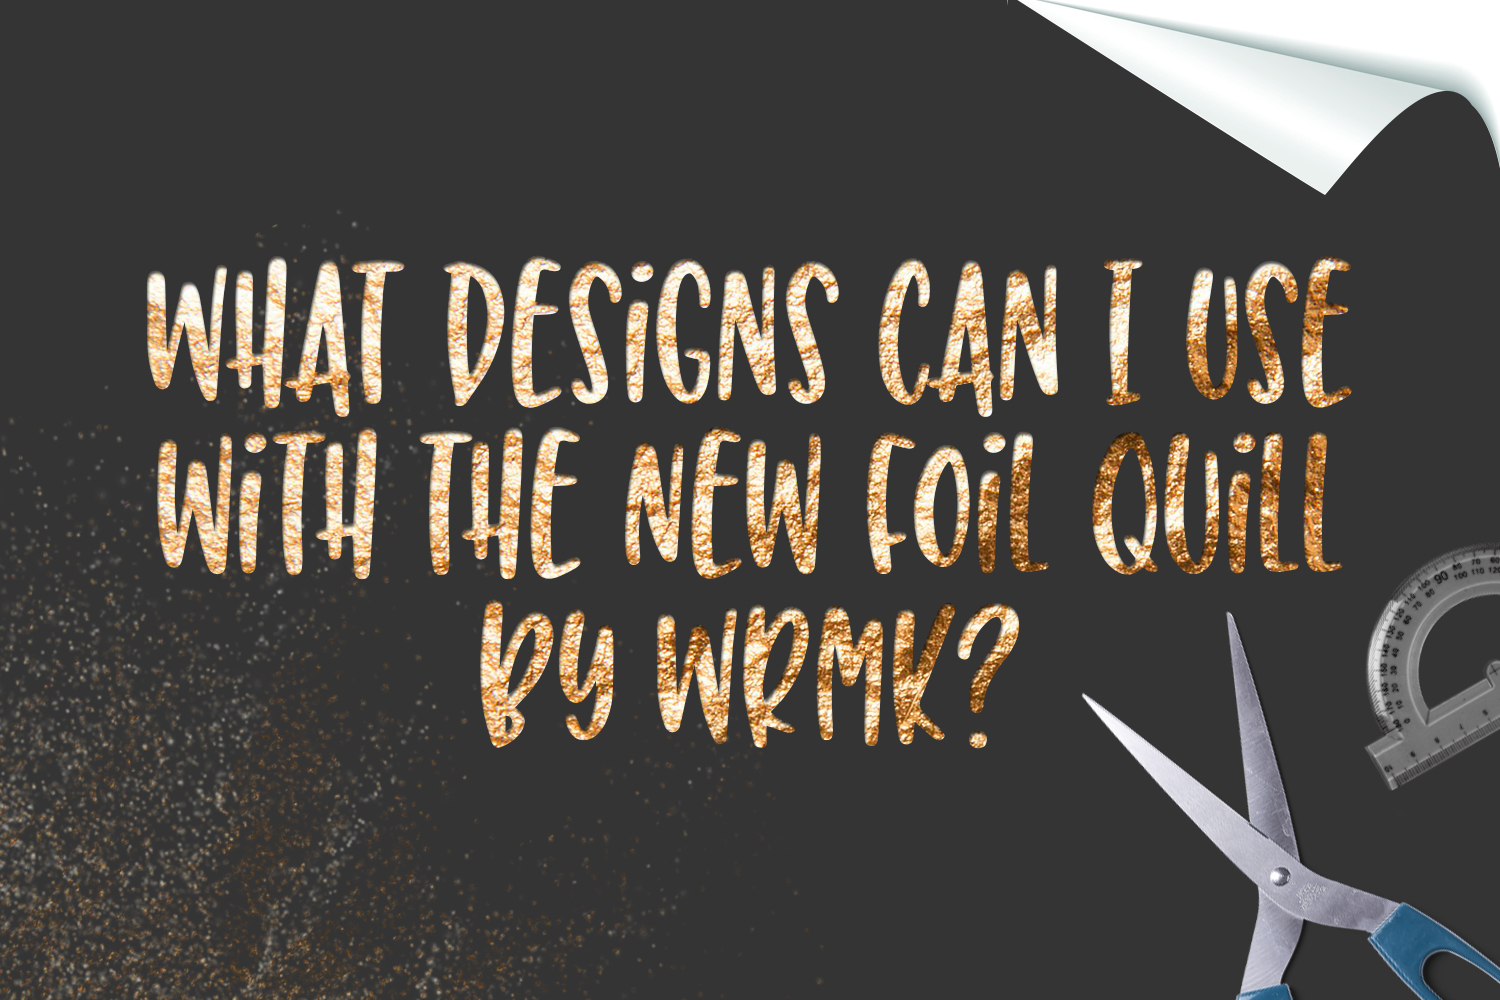 What Designs Can I Use with the New Foil Quill by WRMK?